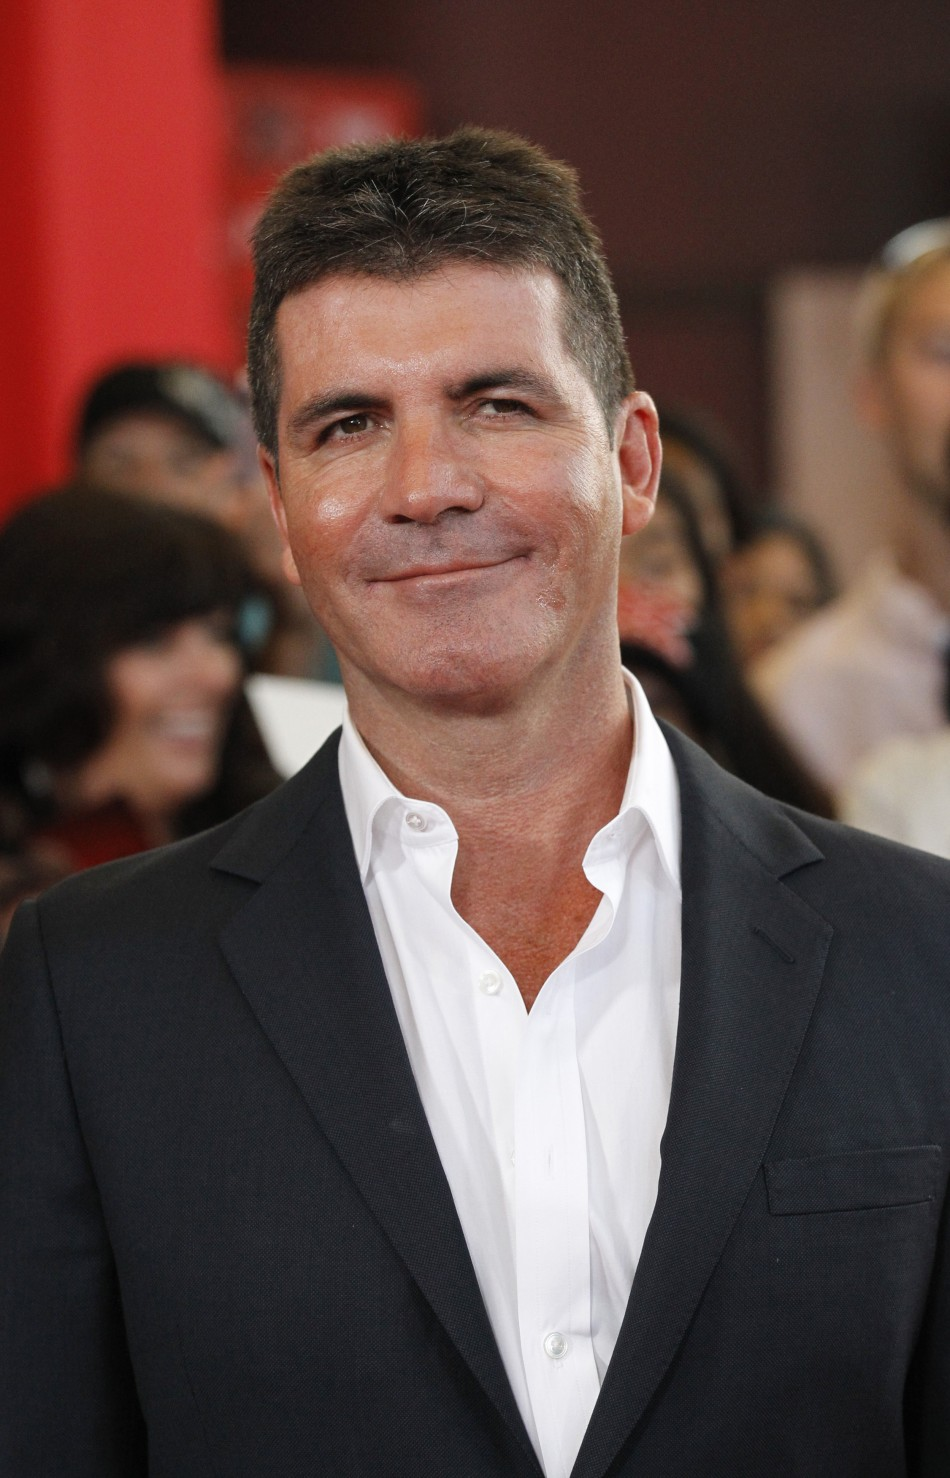 According to sources, Simon Cowell will return on the show next year and hopes that Barbara Windsor and David Williams will join the panel.